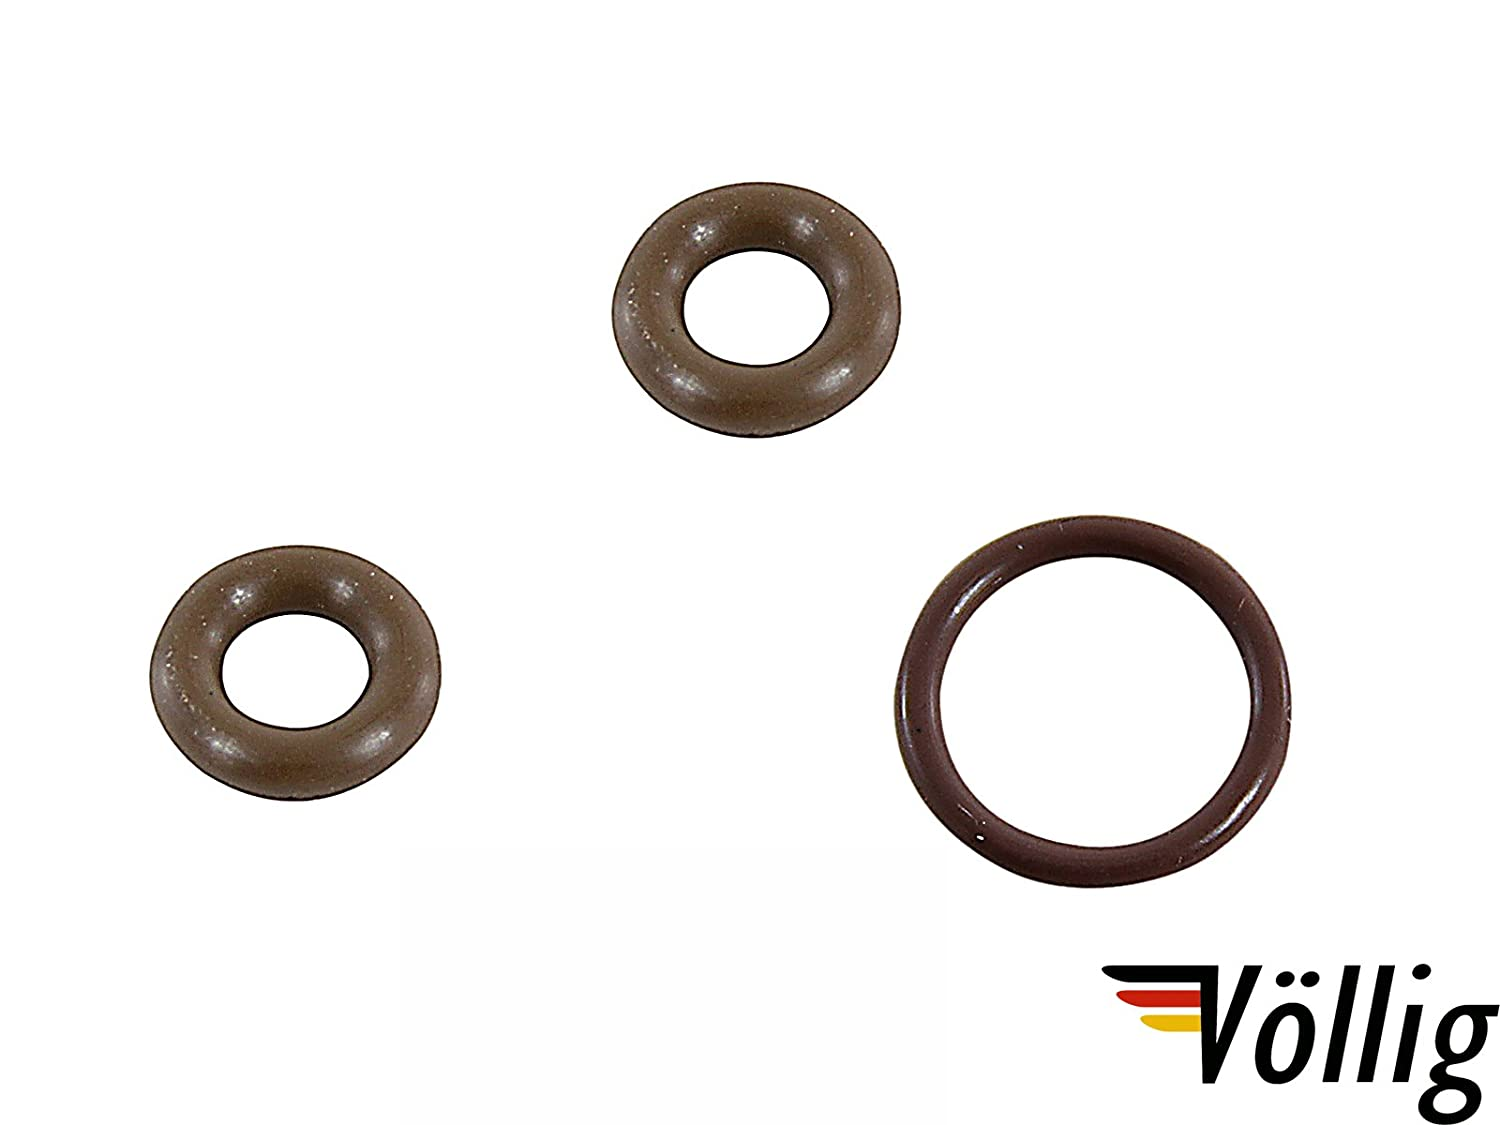 Viton Ford Powerstroke 73l 73 L Fuel Filter Bowl Drain On 99 F250 Valve O Ring Kit 3pc Automotive